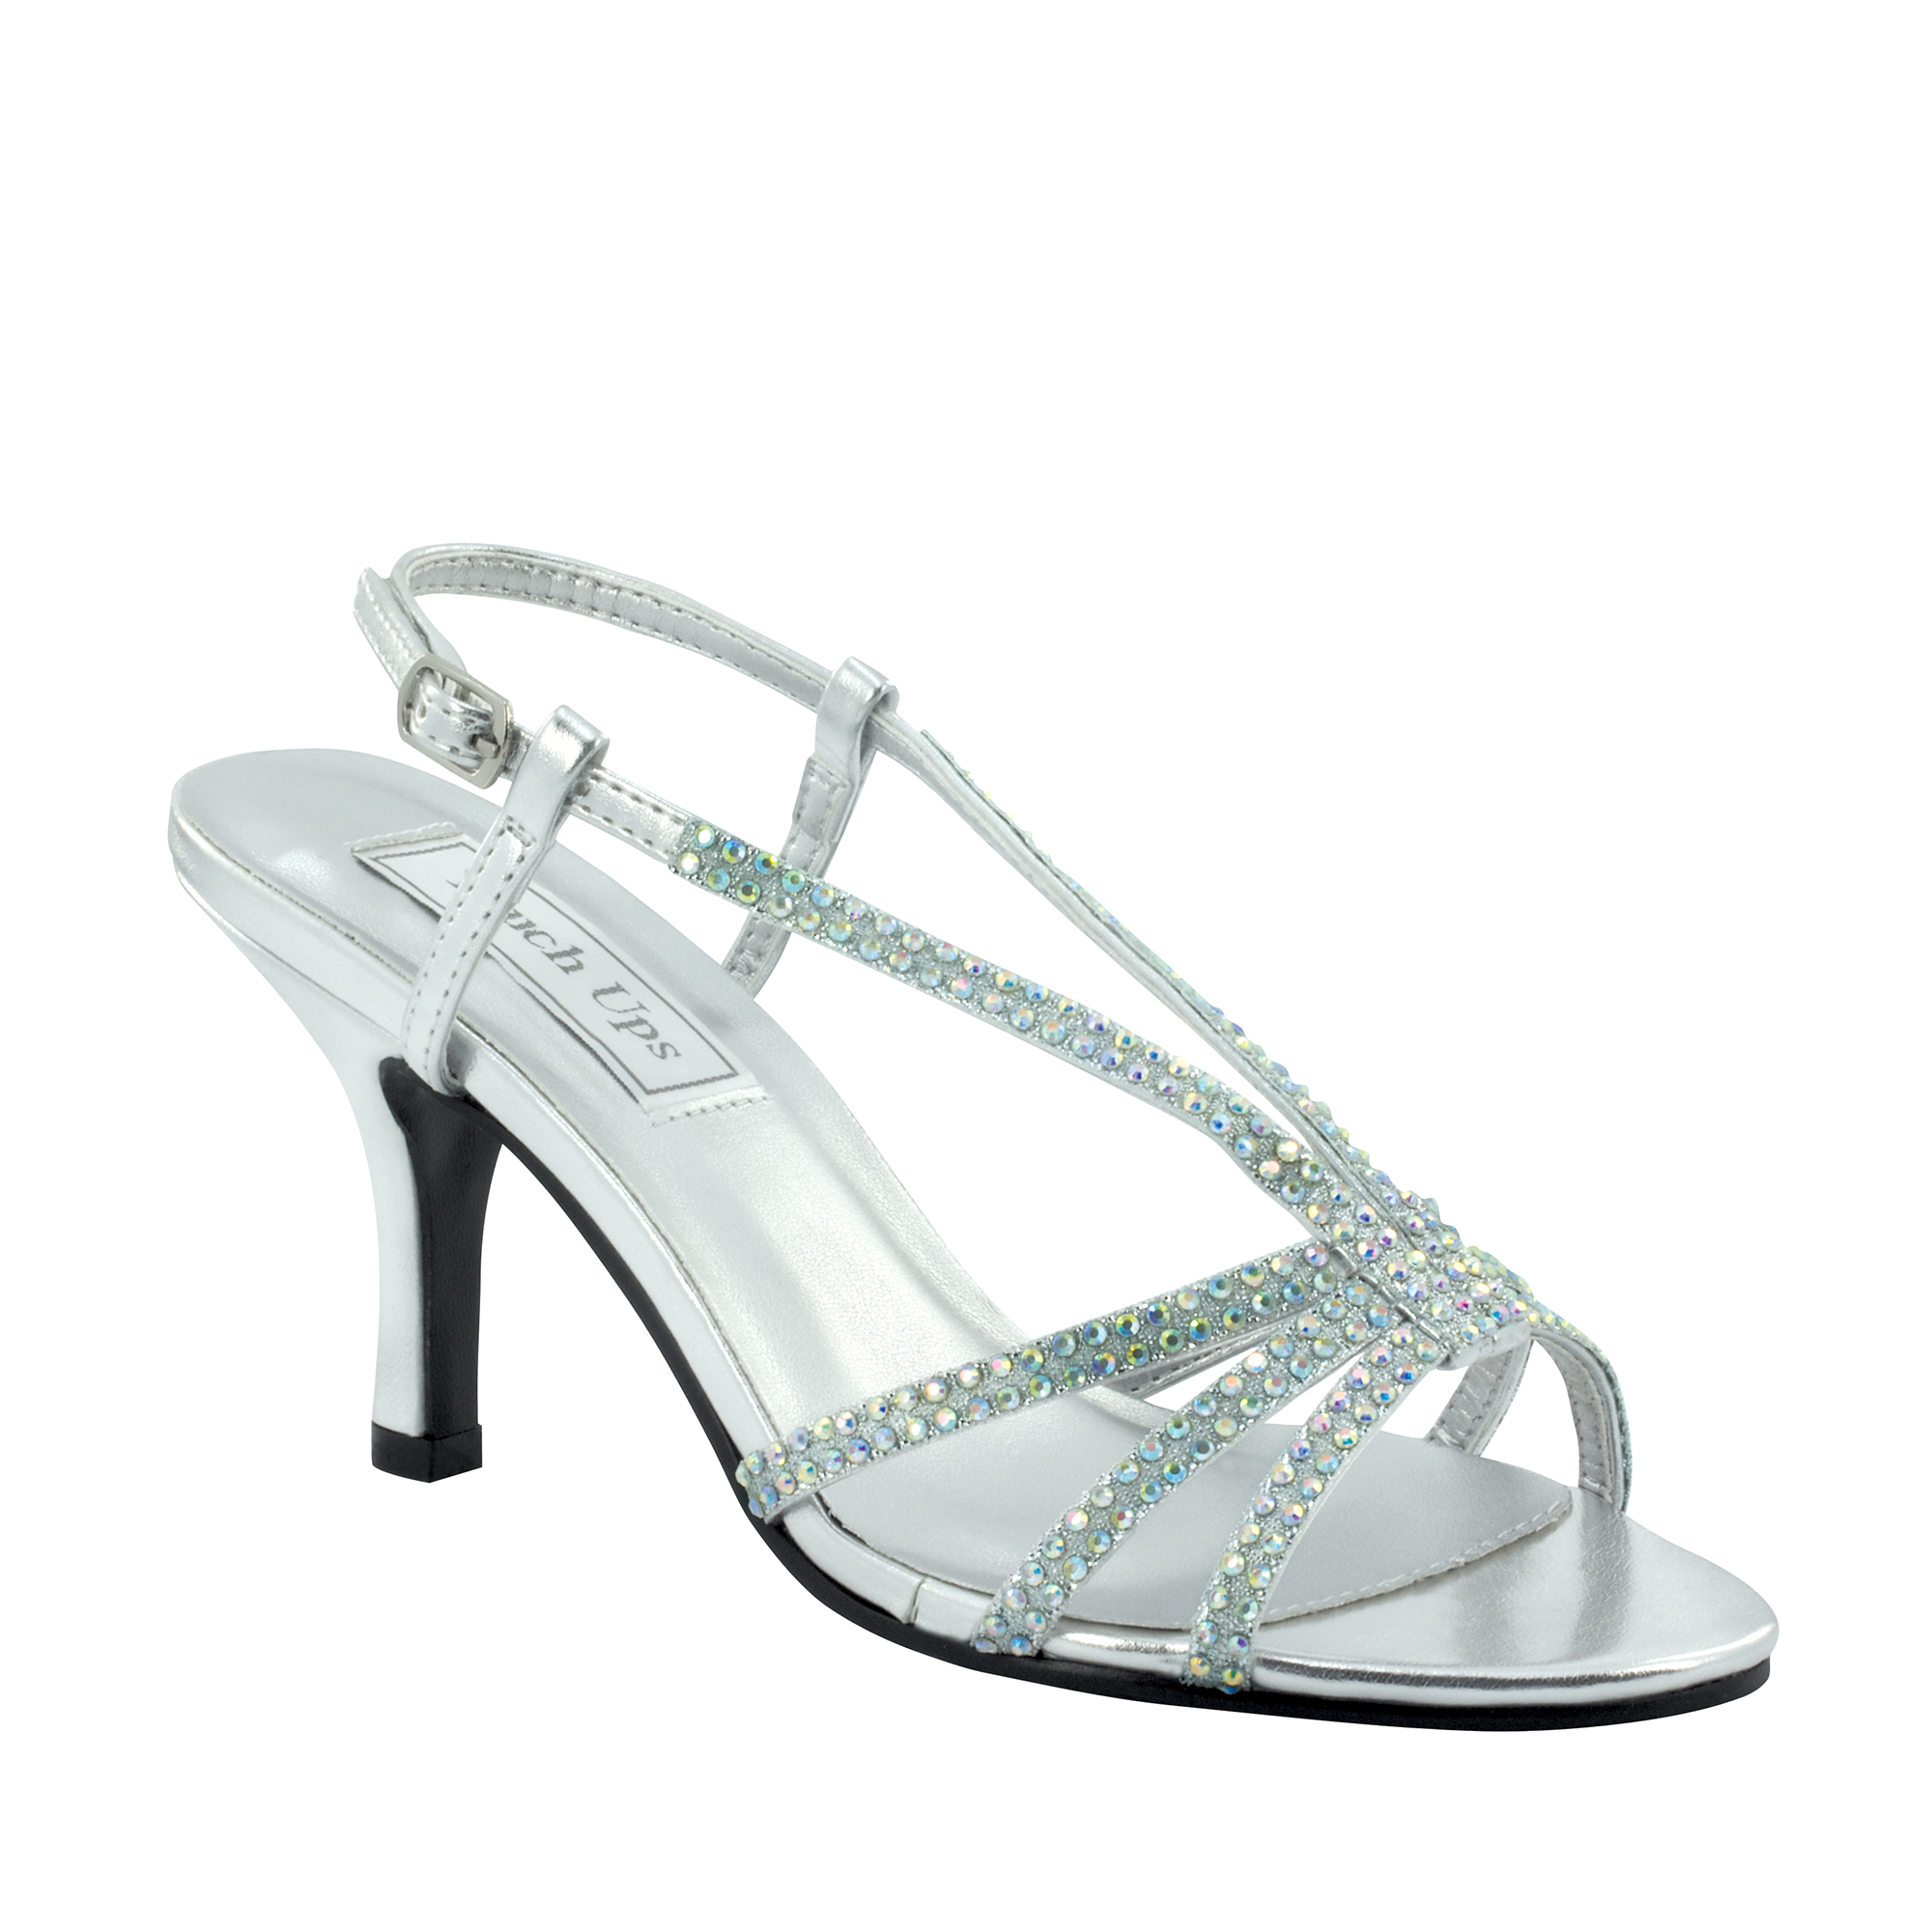 Image of Touch Ups Womens Lyric Sandal, Silver Metallic,8.5 W US